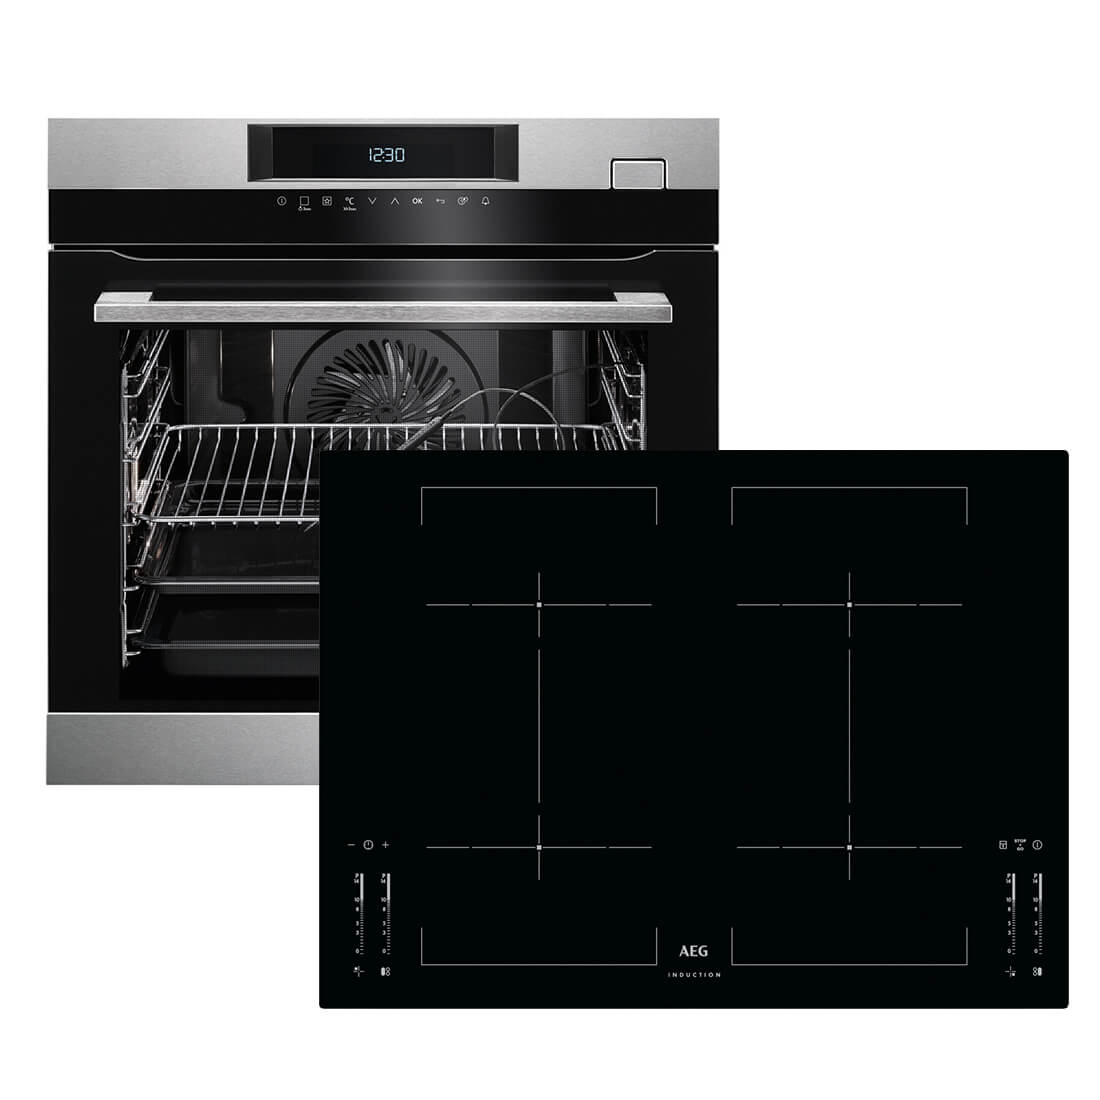 aeg bsk775i backofen set bsk774220m backofen hkm76400i b autark induktions k ebay. Black Bedroom Furniture Sets. Home Design Ideas